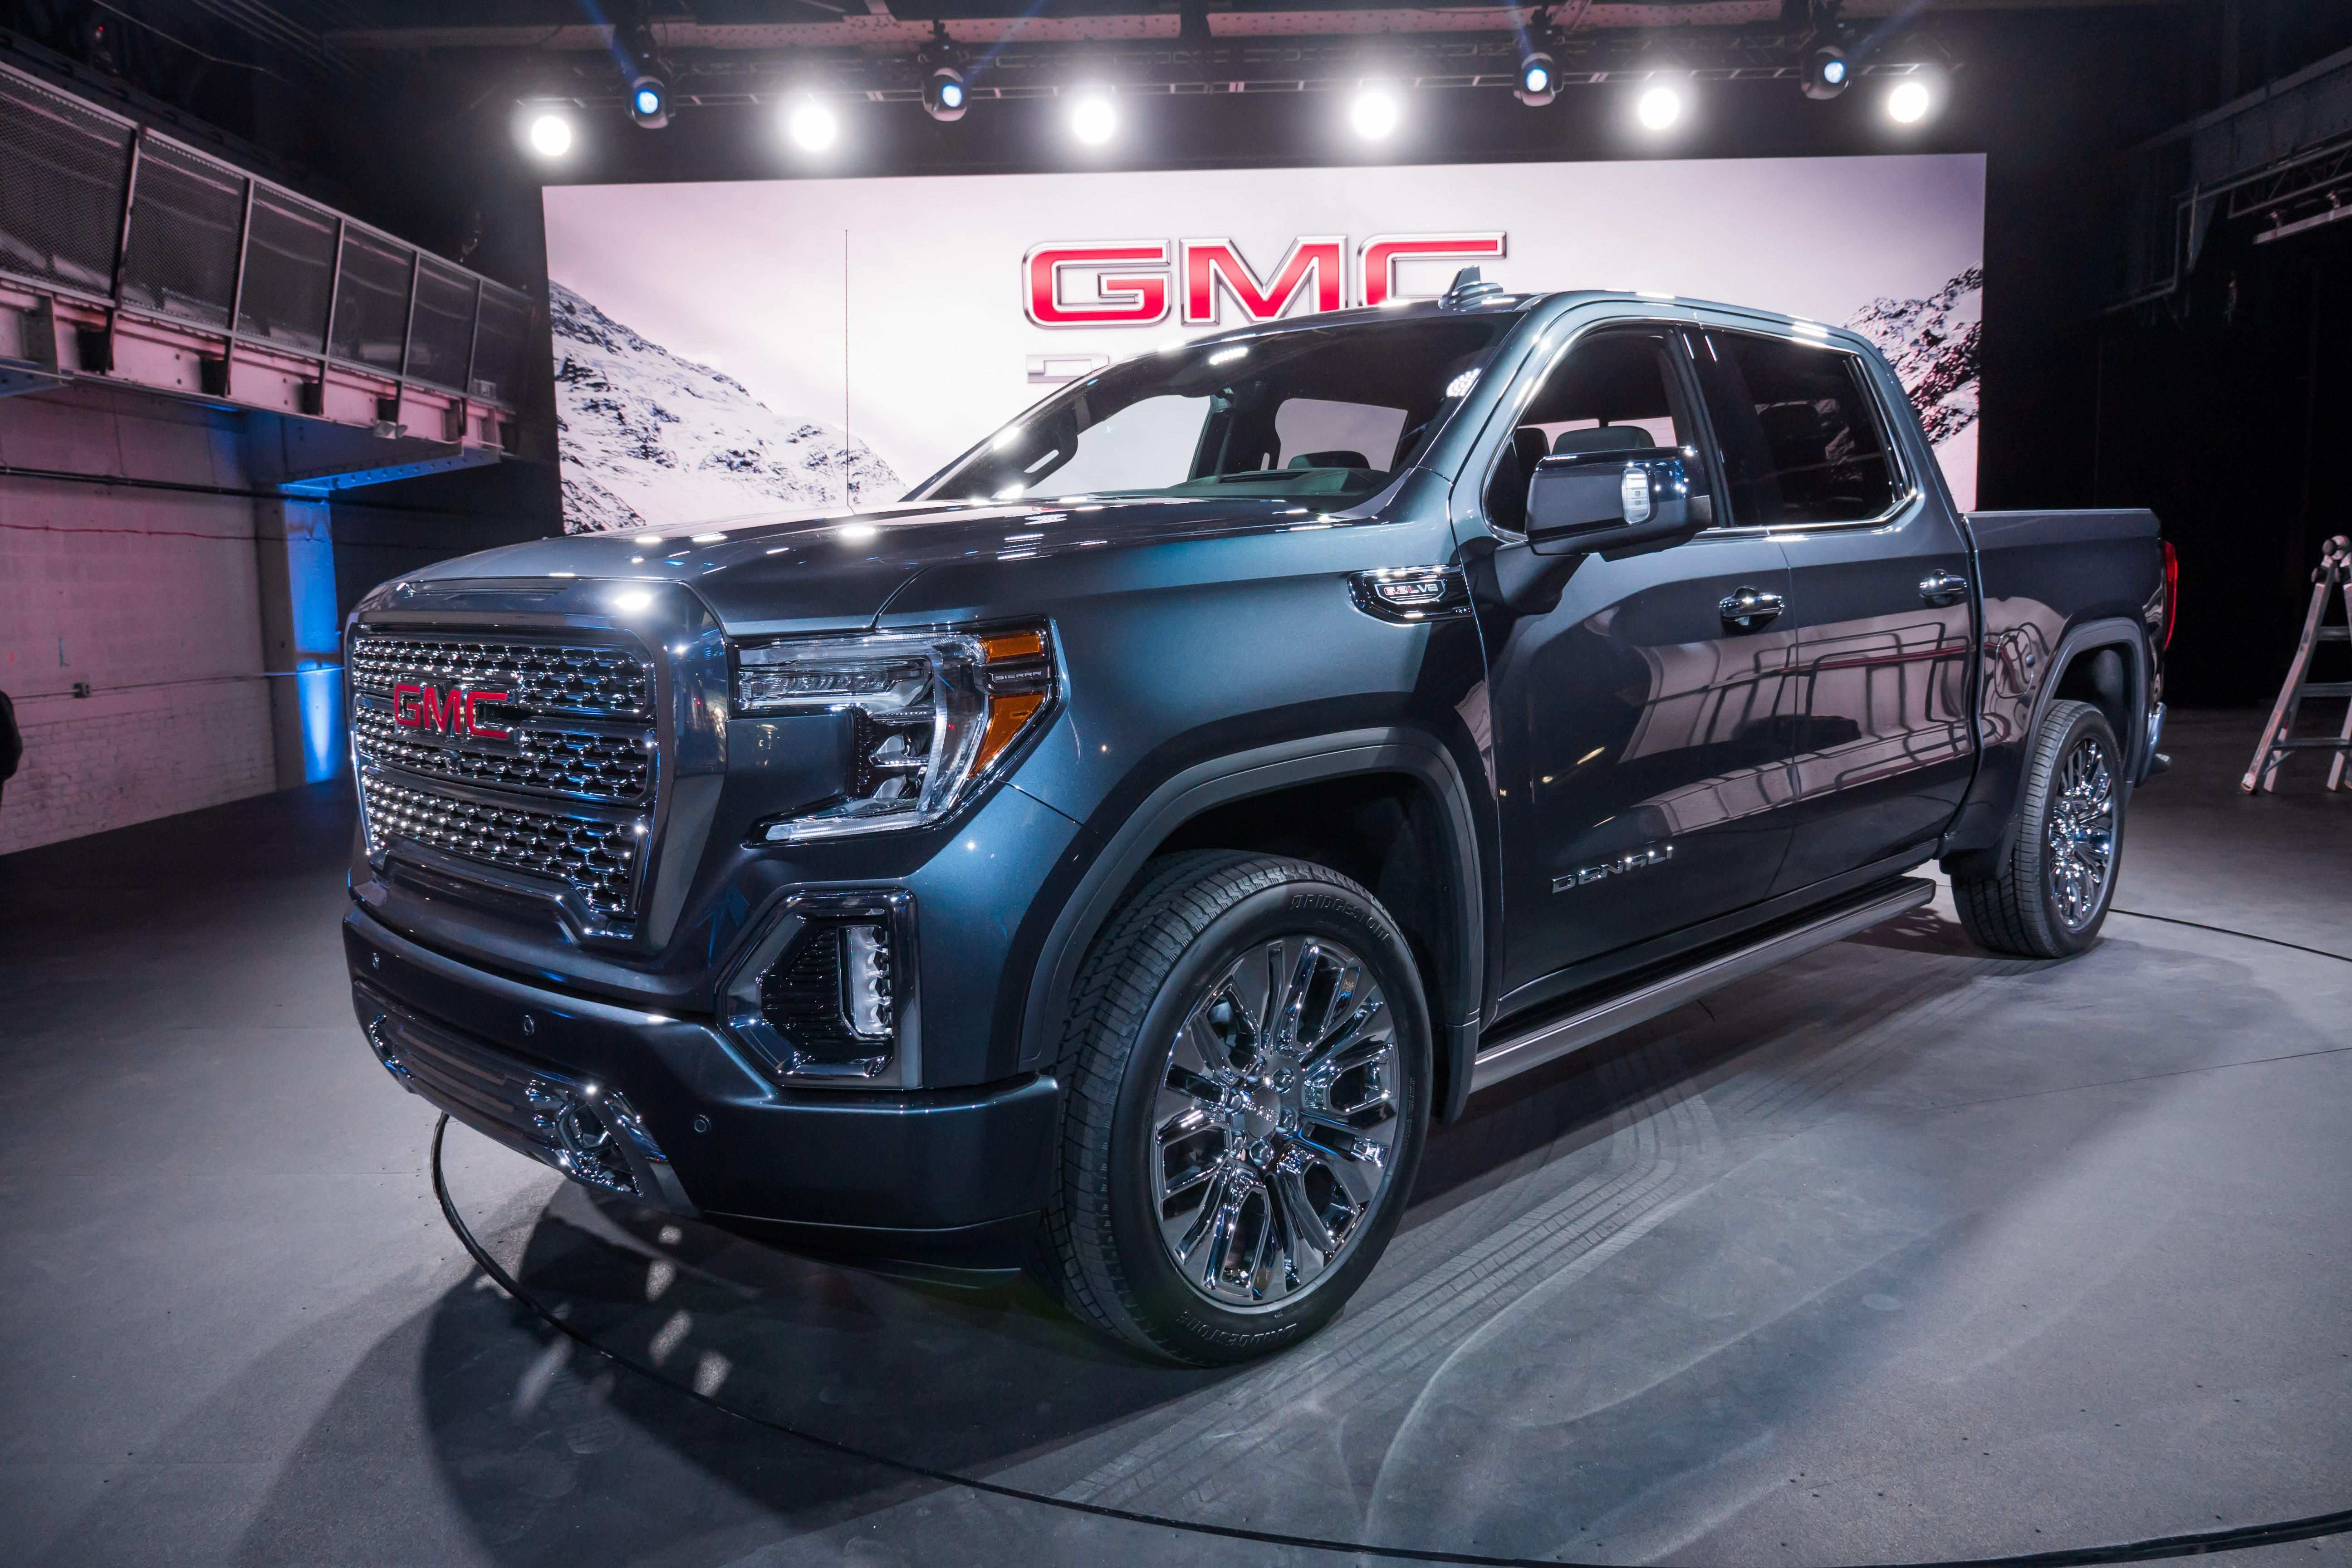 17 Concept of Best 2019 Gmc Denali Pickup Exterior And Interior Review Pricing with Best 2019 Gmc Denali Pickup Exterior And Interior Review